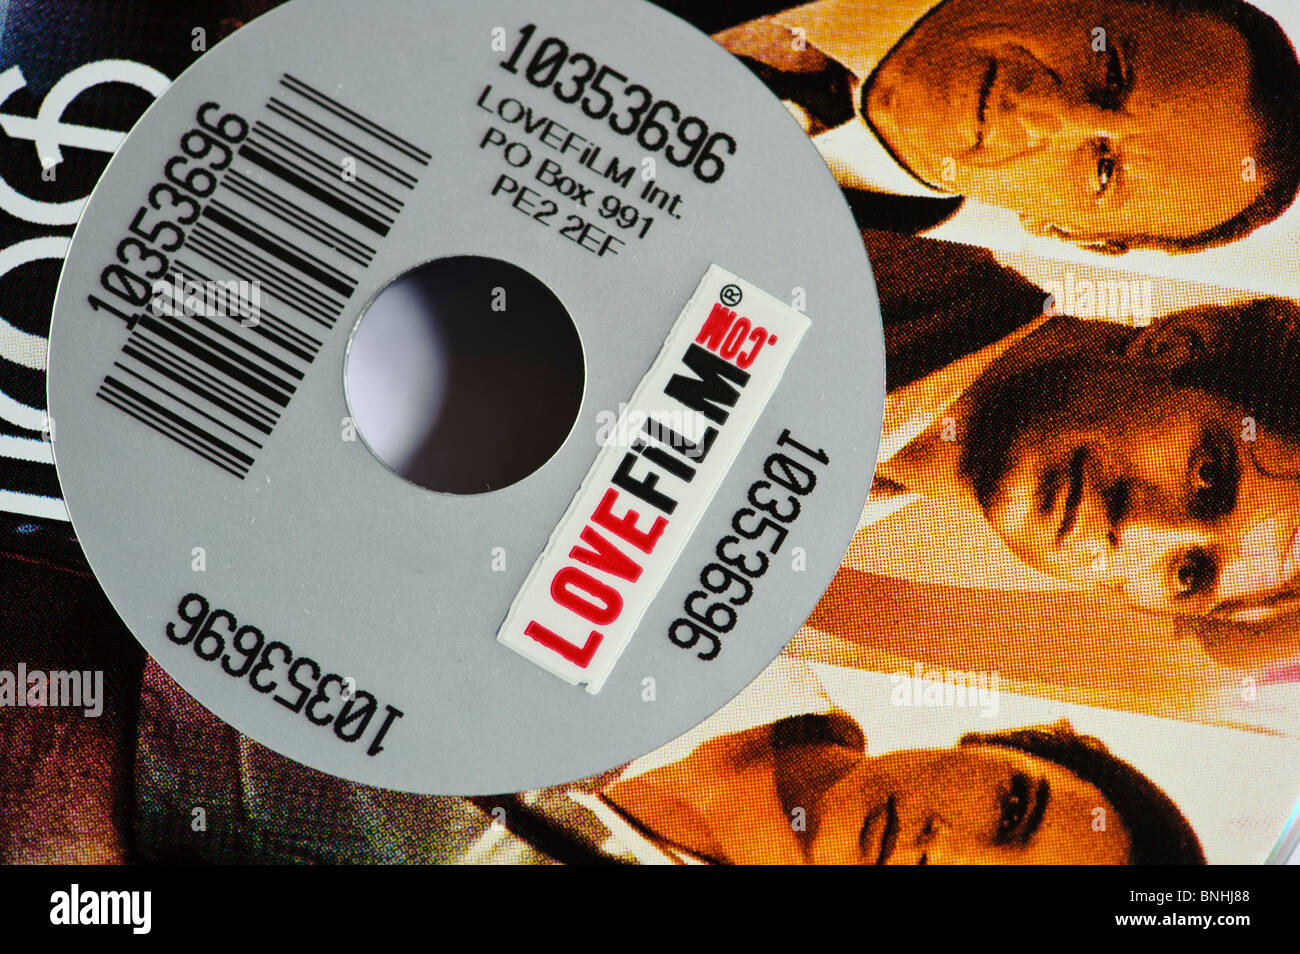 Lovefilm.com location de dvd par la poste, UK Photo Stock